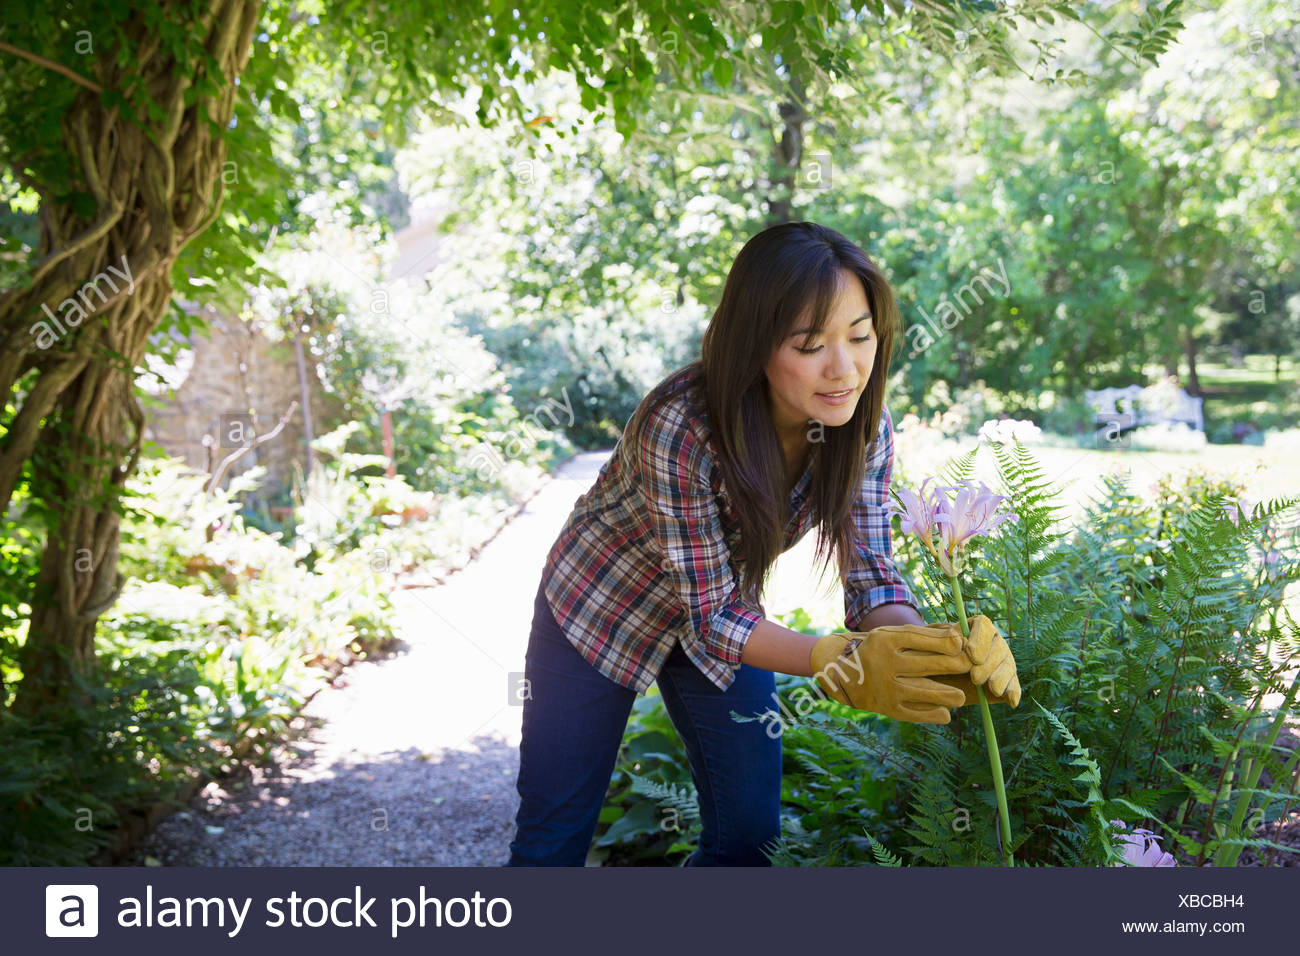 A farm growing and selling organic vegetables and fruit. A young woman working. Stock Photo